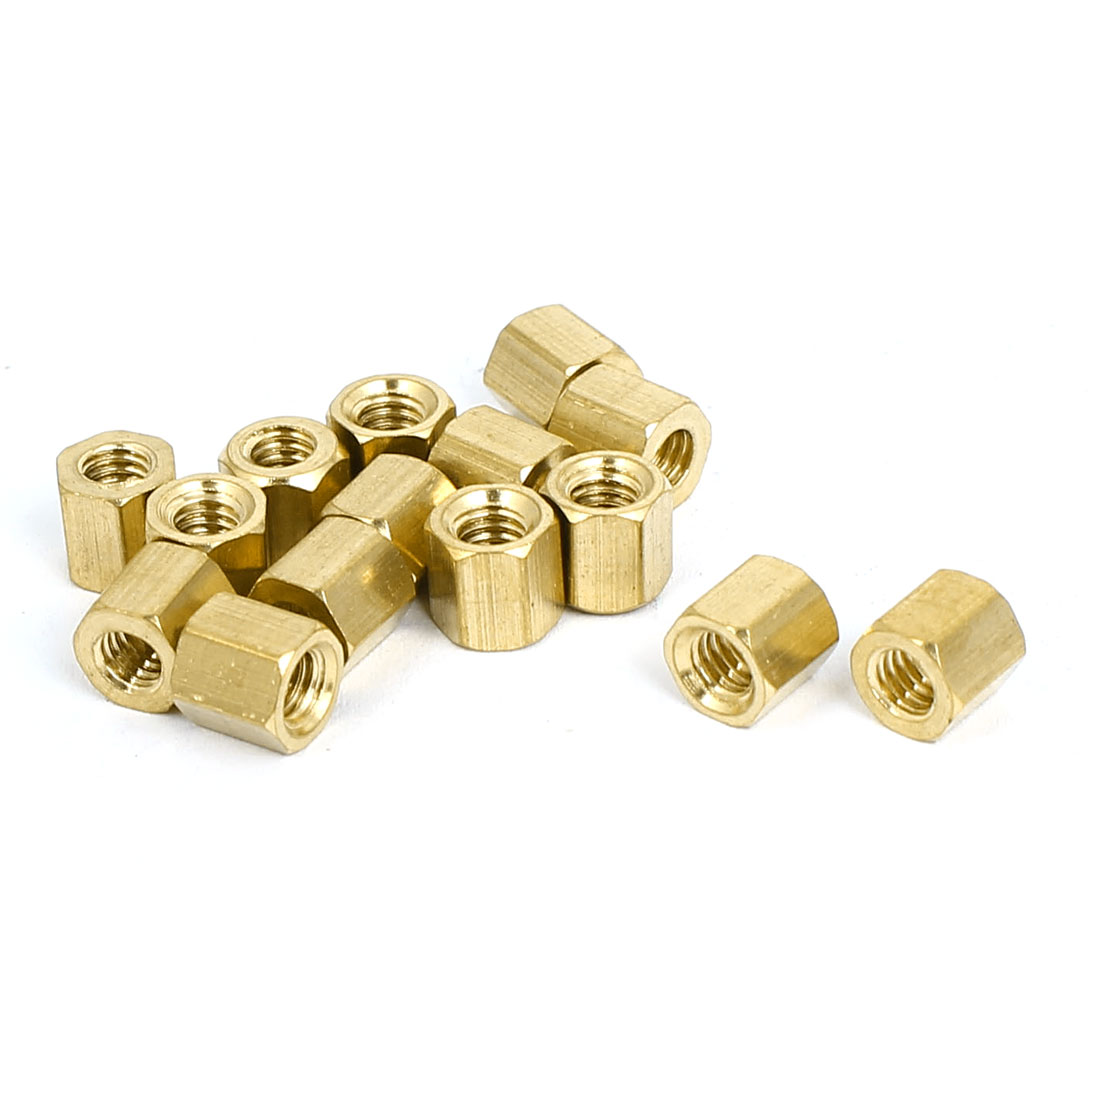 M4x6mm Brass Hex Hexagonal Female Threaded Standoff Spacer Pillars 15pcs